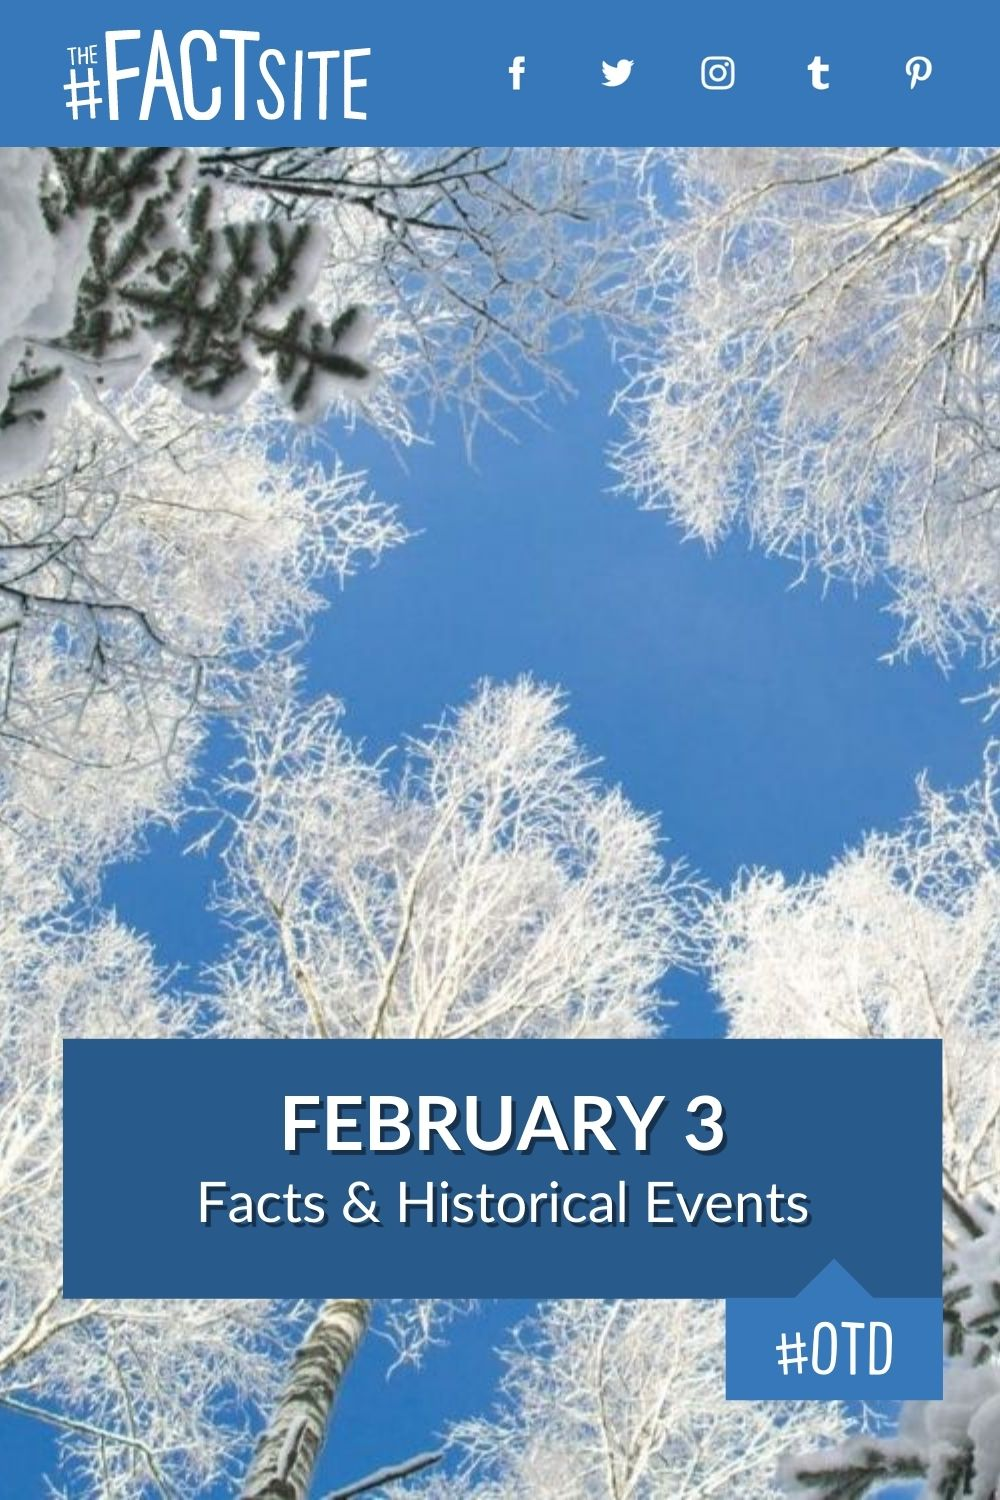 Facts & Historic Events That Happened on February 3